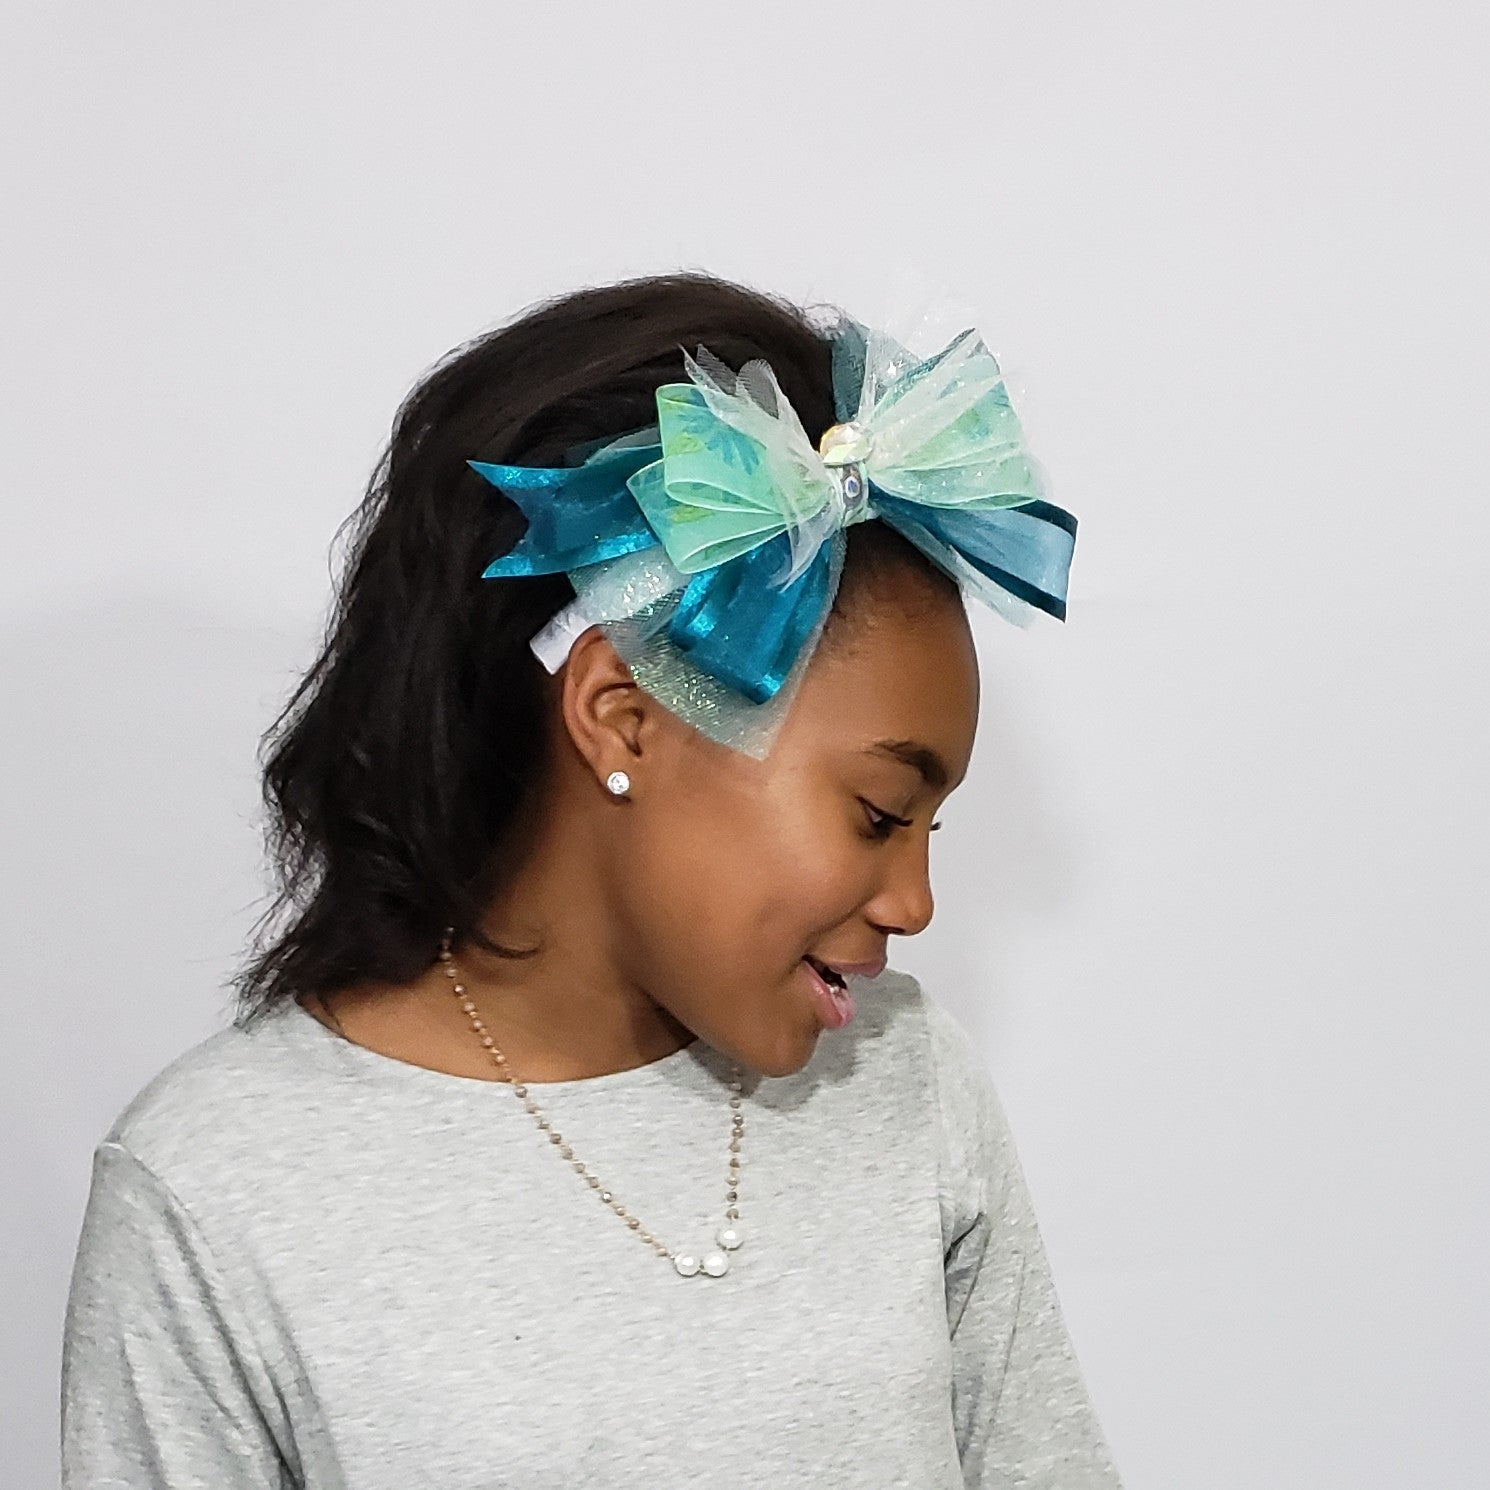 N-Zala Swarovski Peacock Ribbons & Tulle Headband in Teal Green & White - Houzz of DVA Boutique